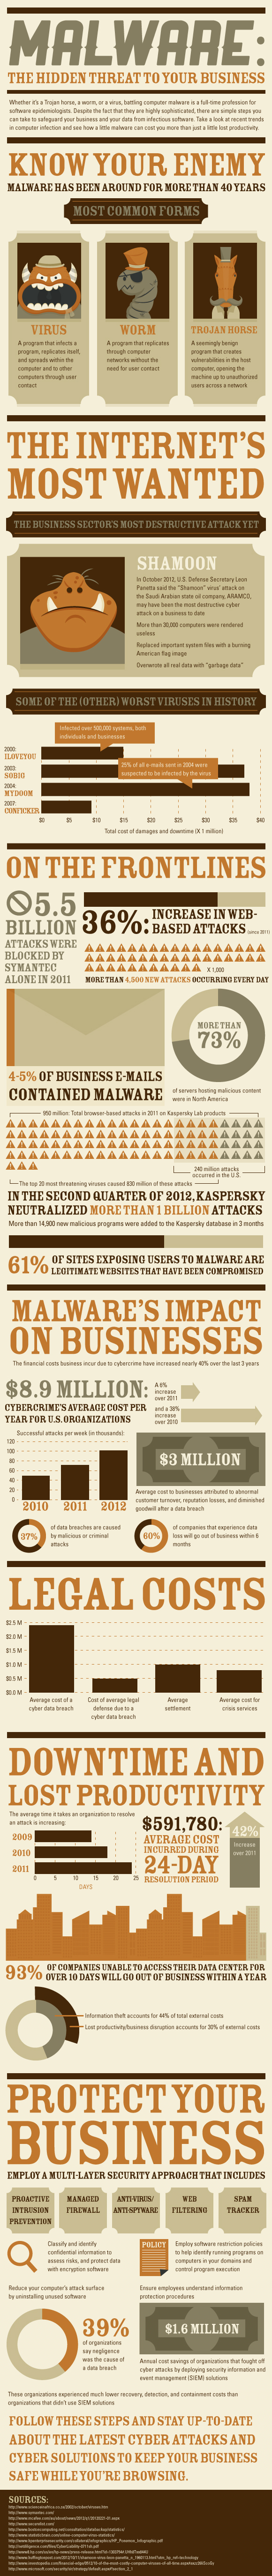 malware--the-hidden-threat-to-your-business_50a2e67c0c549